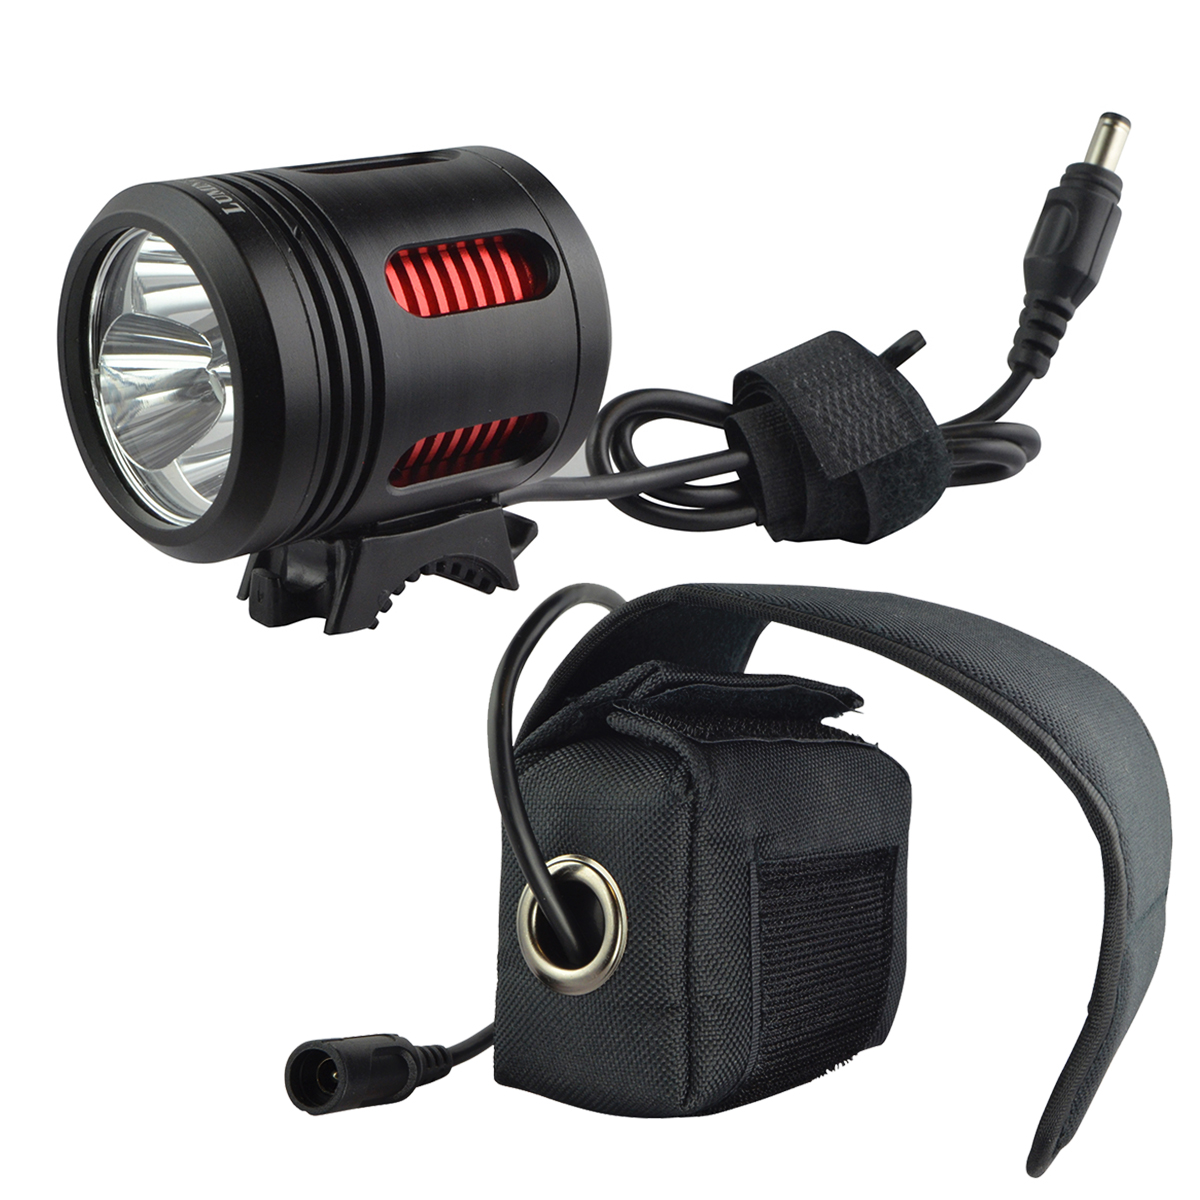 Lumintrail 3000 Lumen LED Bicycle Headlight Set with Rechargeable 7200mAh Battery Pack and Included Helmet Strap for Hiking Camping